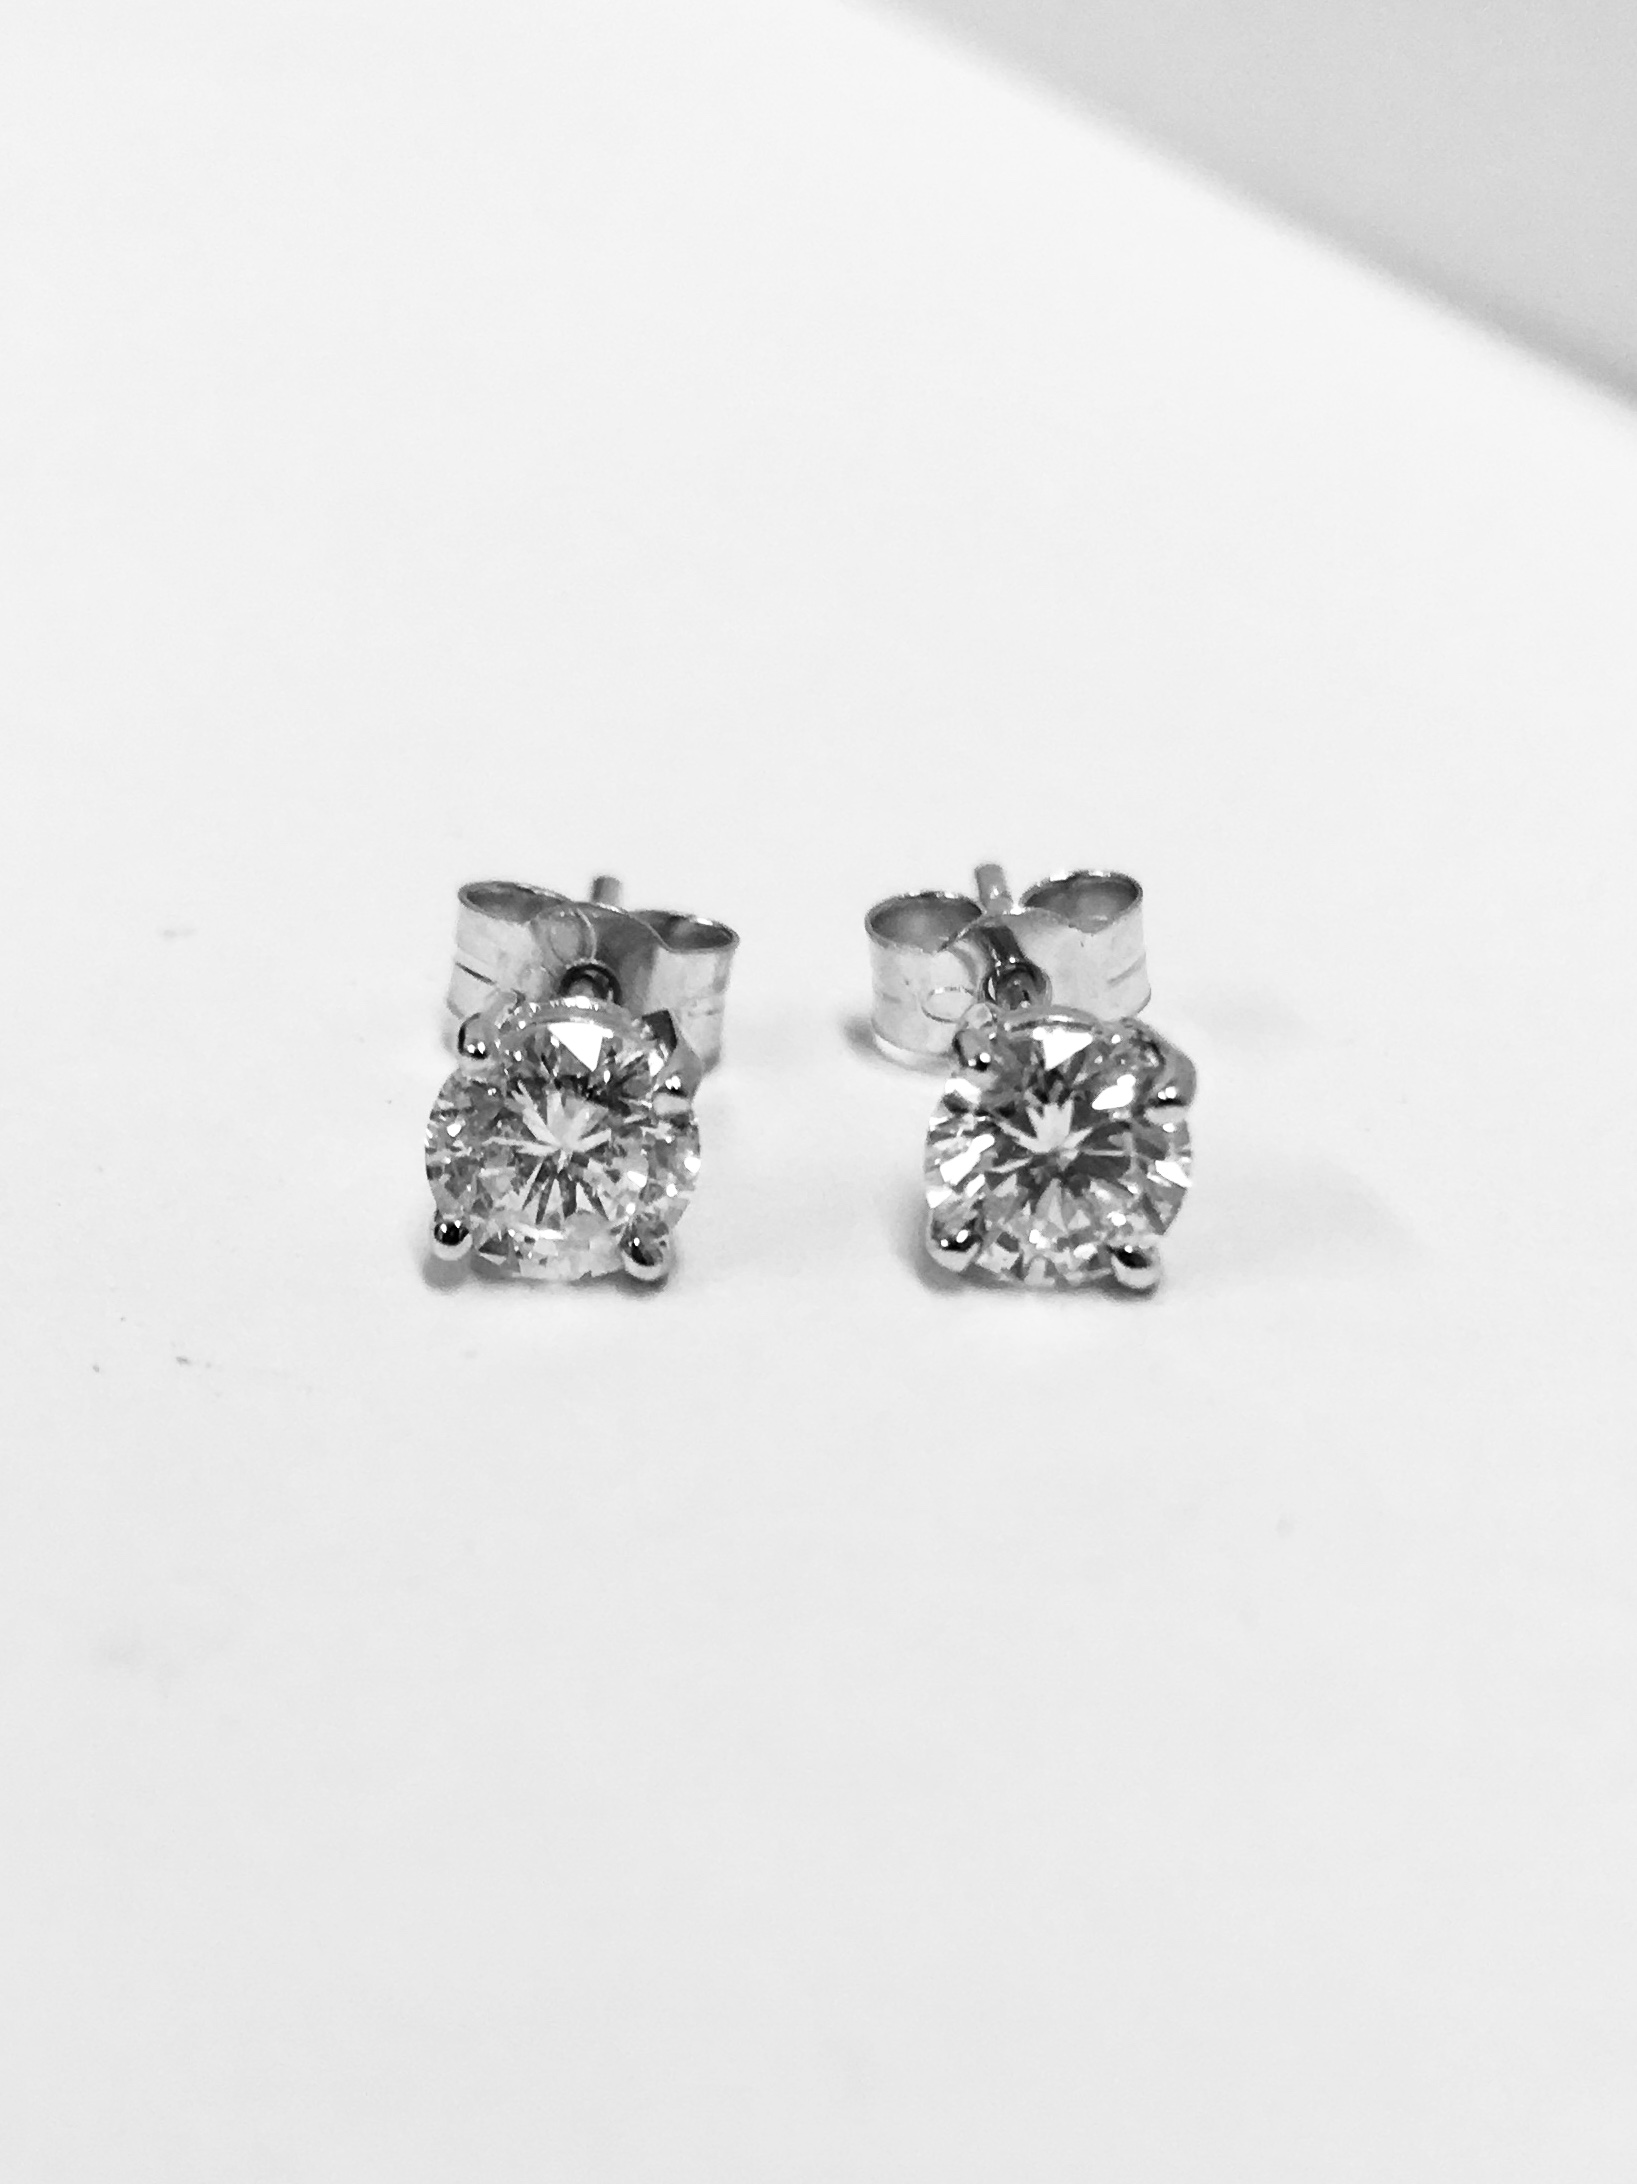 Lot 15 - 1.00ct Solitaire diamond stud earrings set with enhanced brilliant cut diamonds, SI3 clarity and H